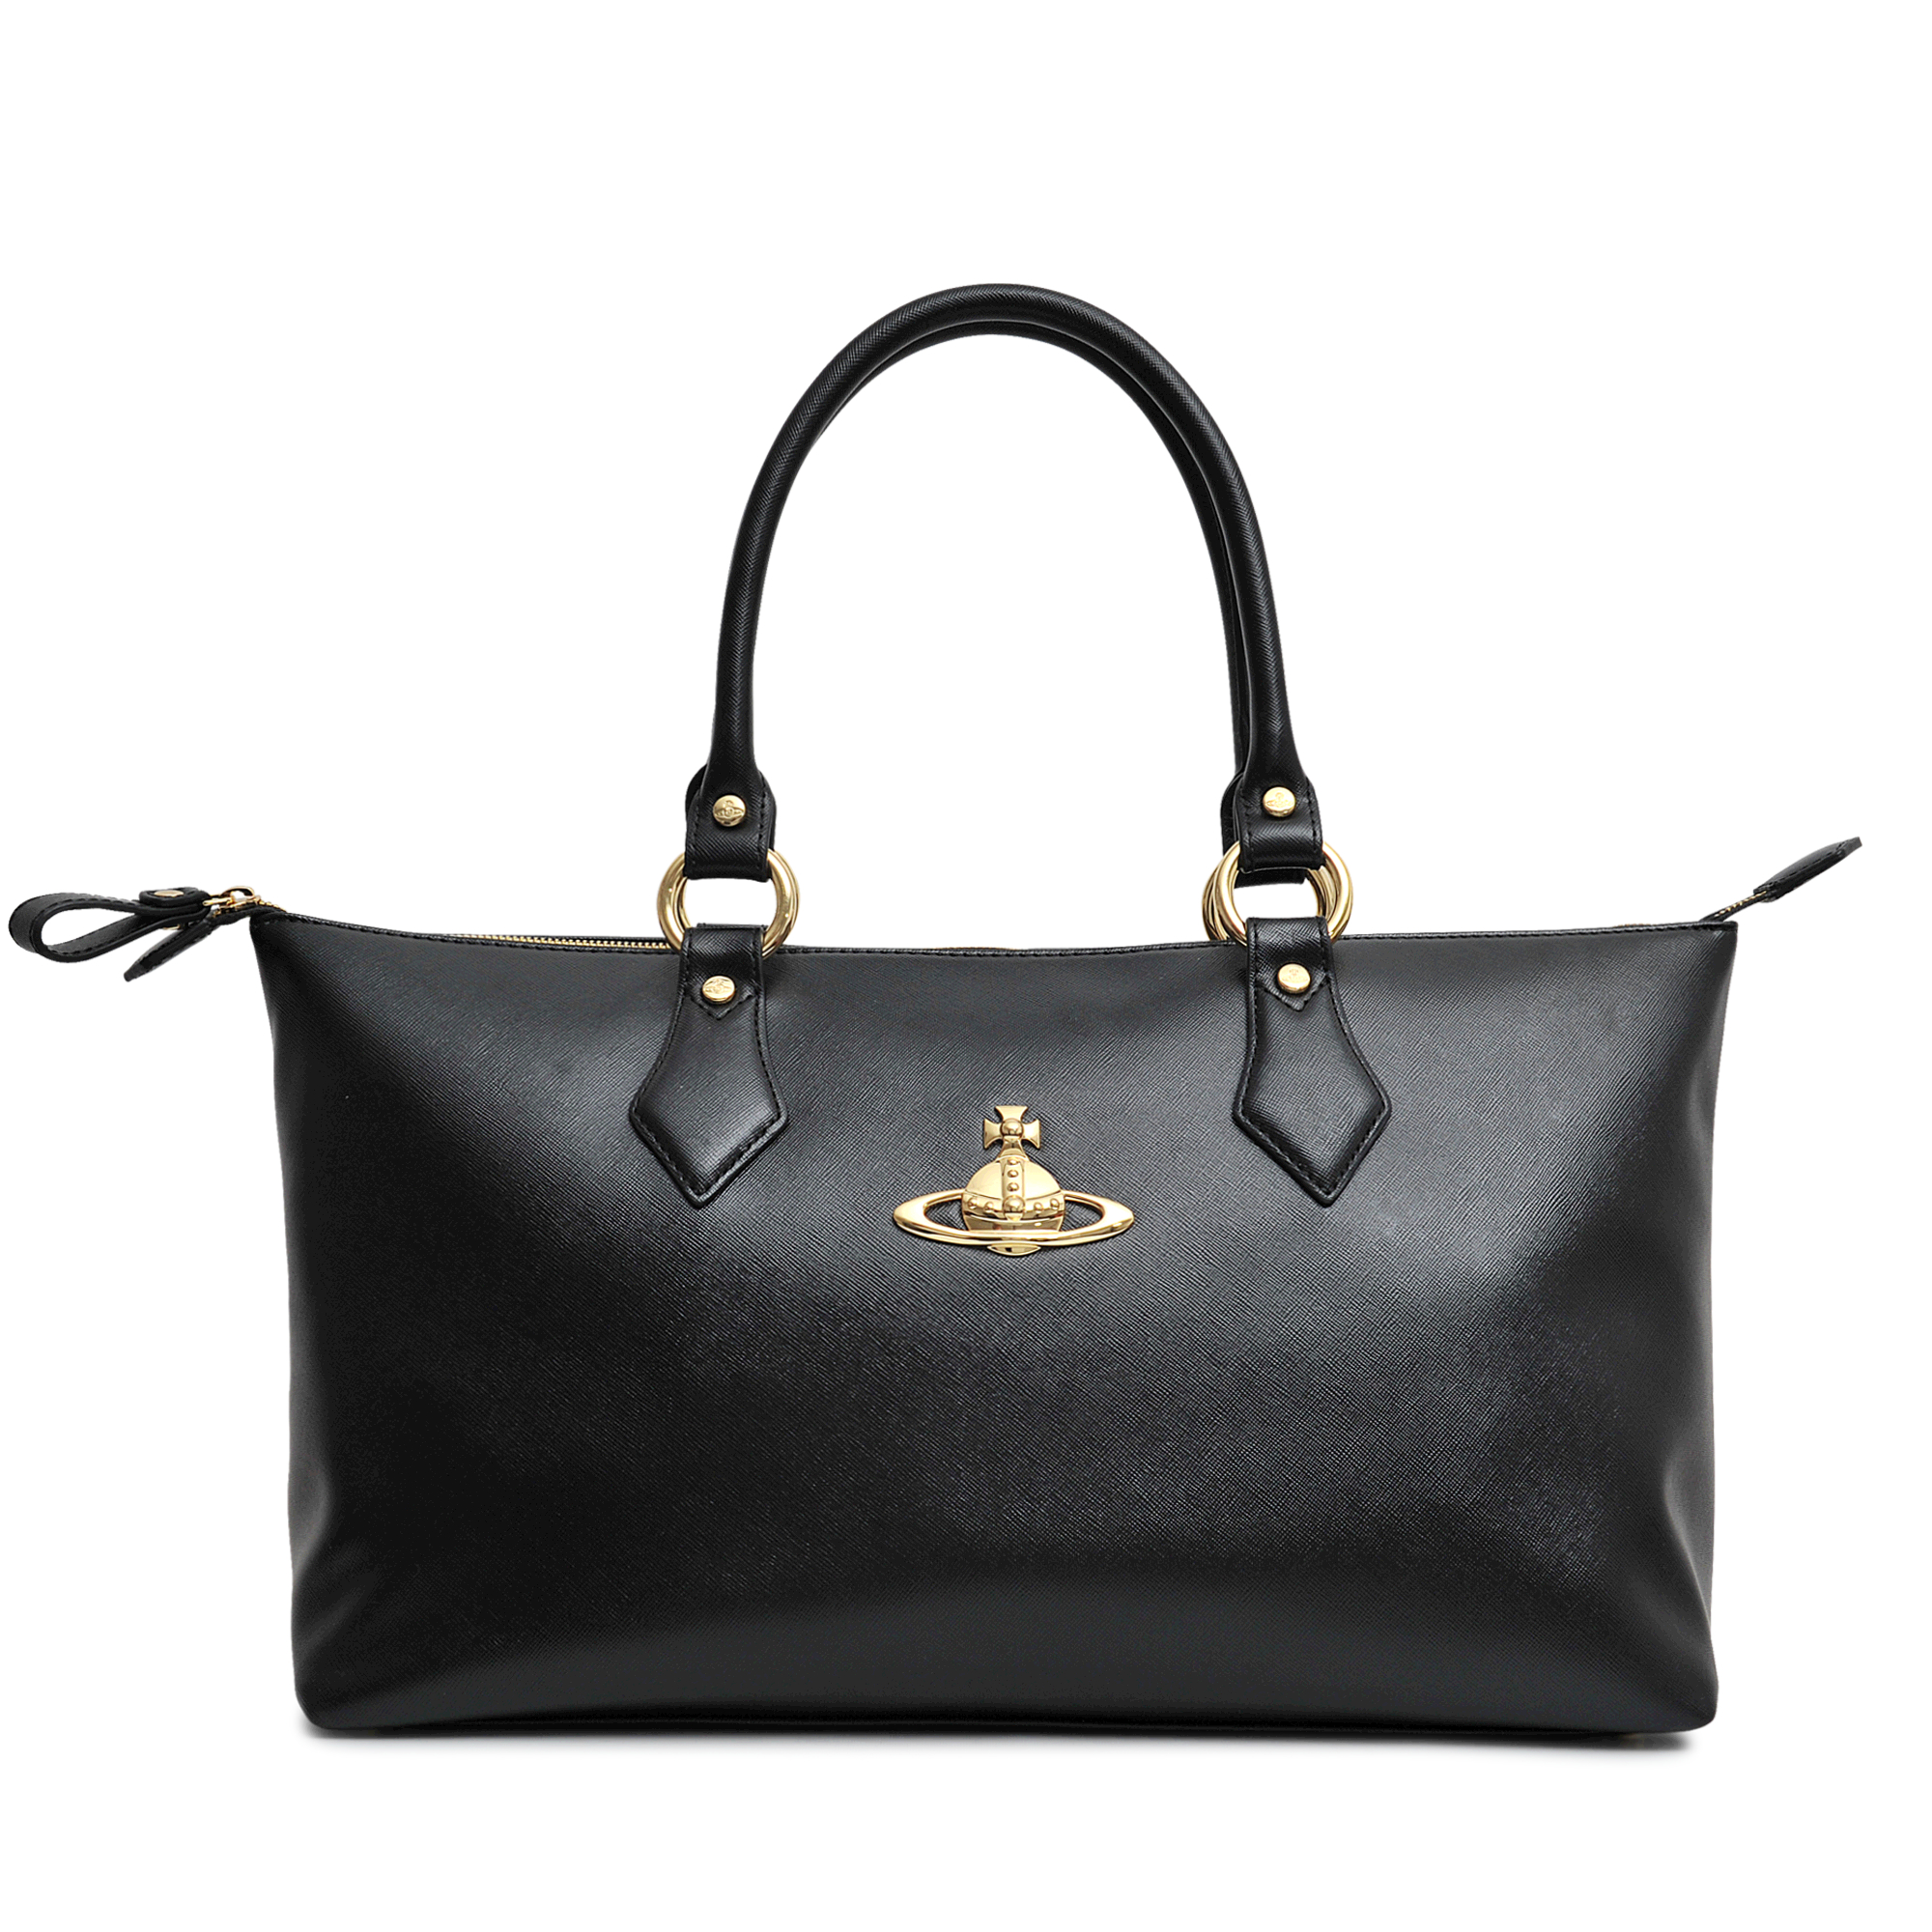 Lyst - Vivienne Westwood Divina Grained Tote in Black 622d06f5e63ac